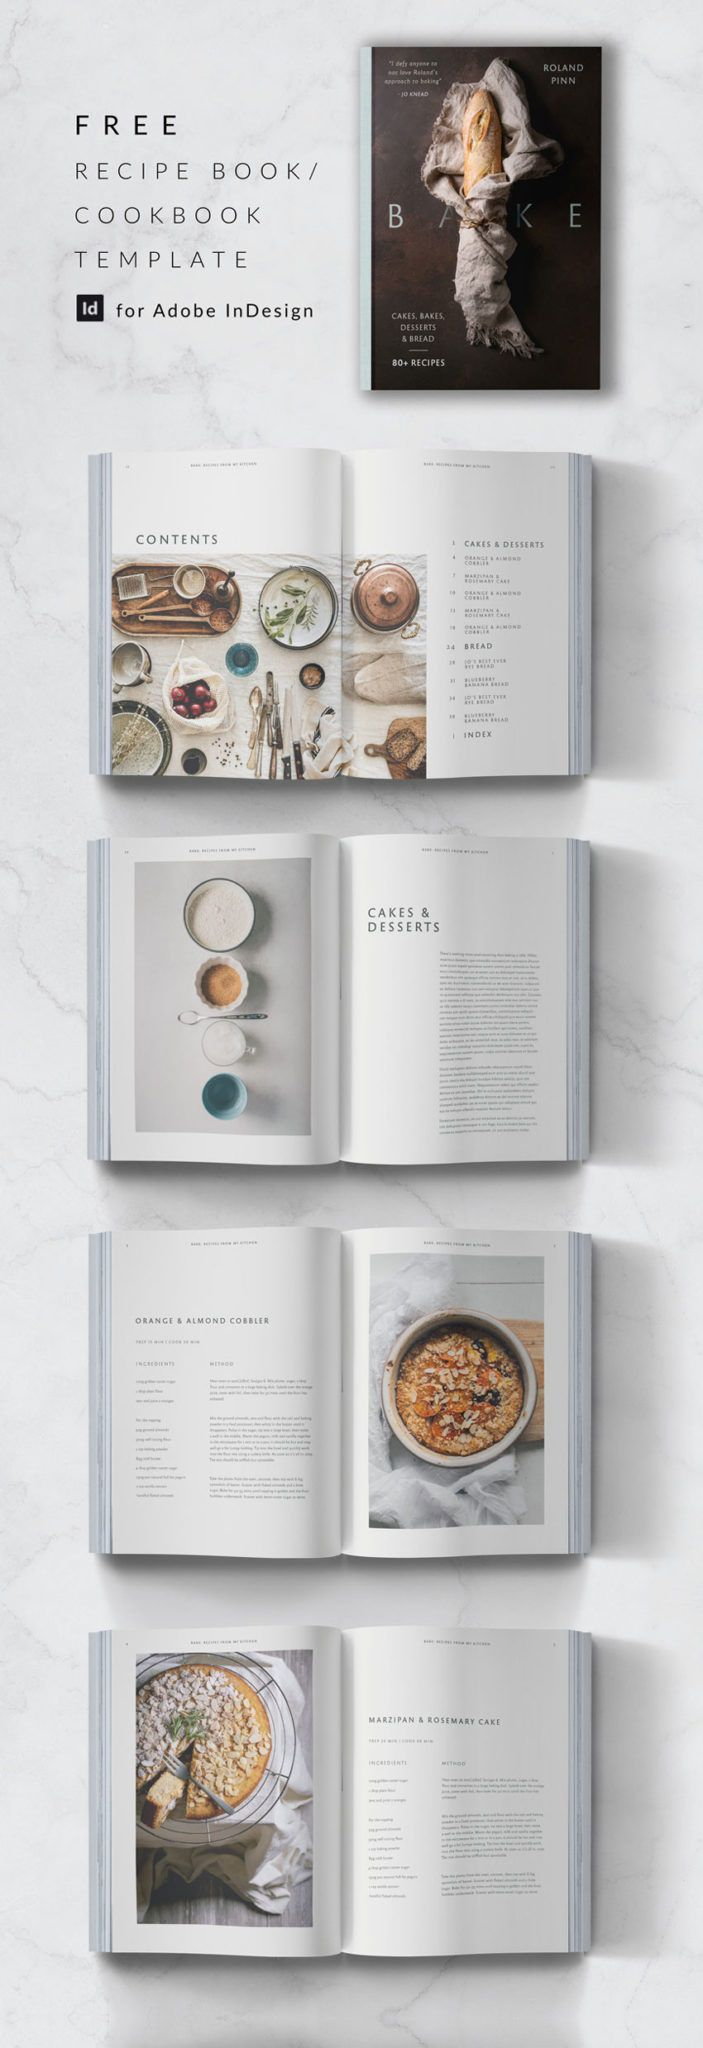 011 Remarkable Create Your Own Cookbook Free Template Sample Full